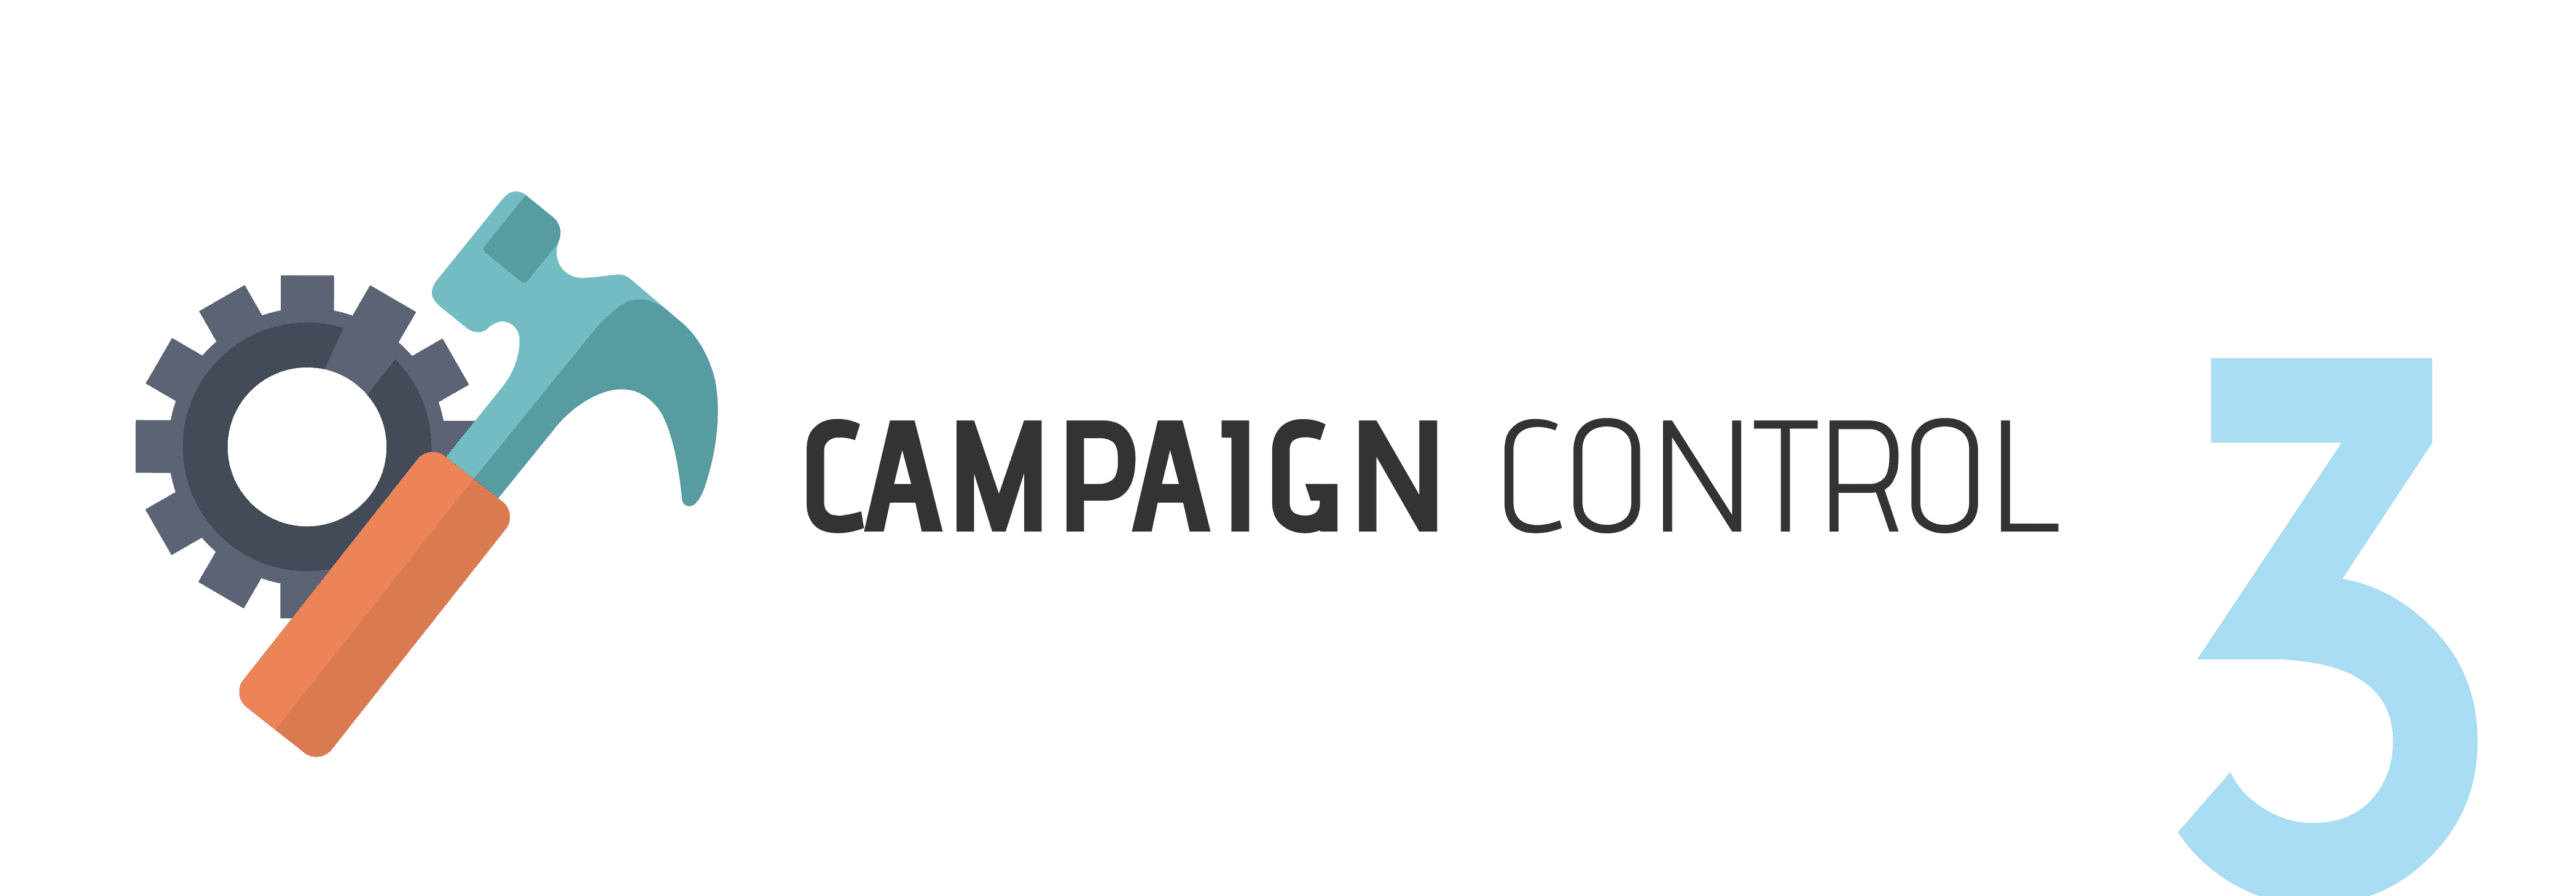 Campaign Control Digital Marketing Benefit Snippet